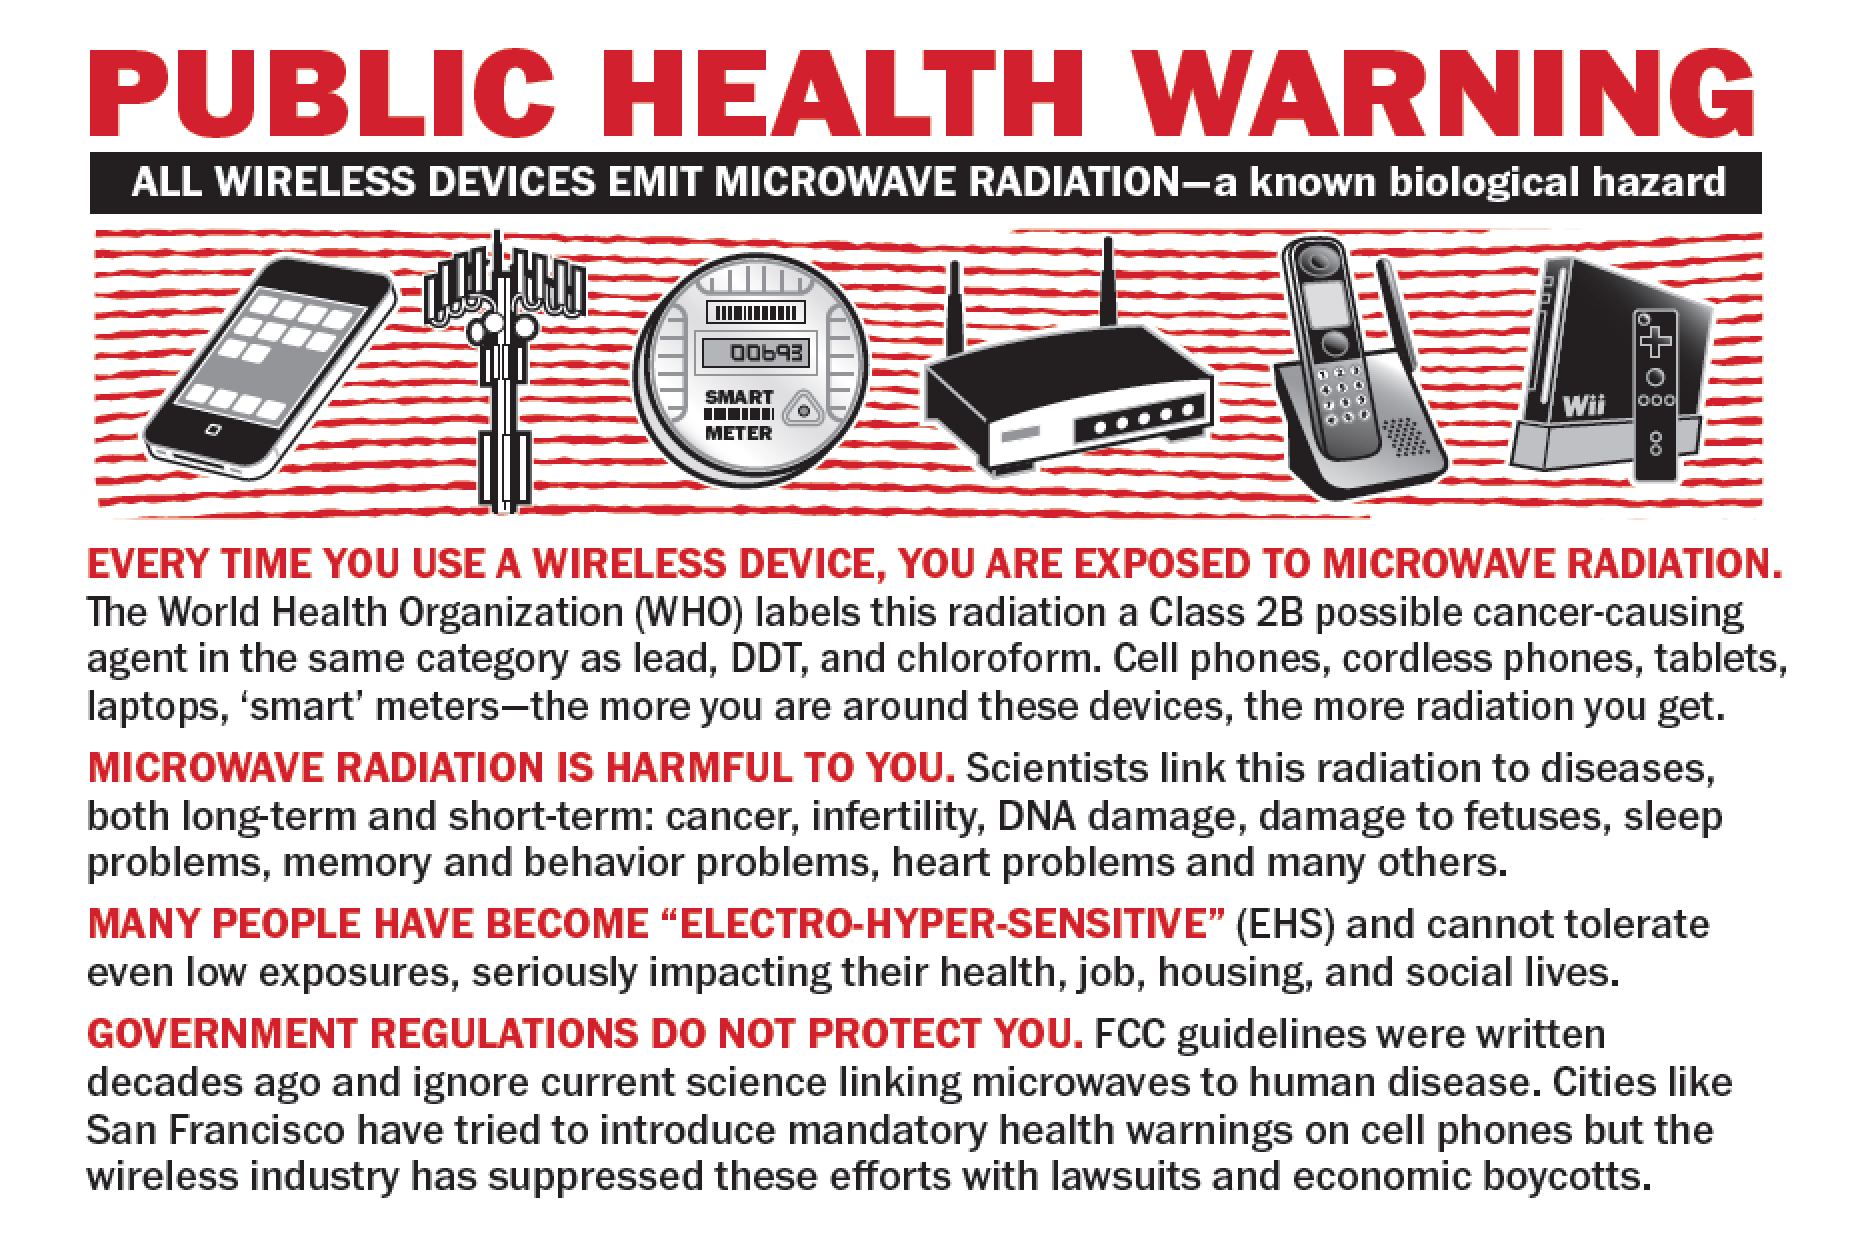 Emf Exposure From Cell Phones Wifi Are Killing Us Softly Questioning Everything Across The Plane